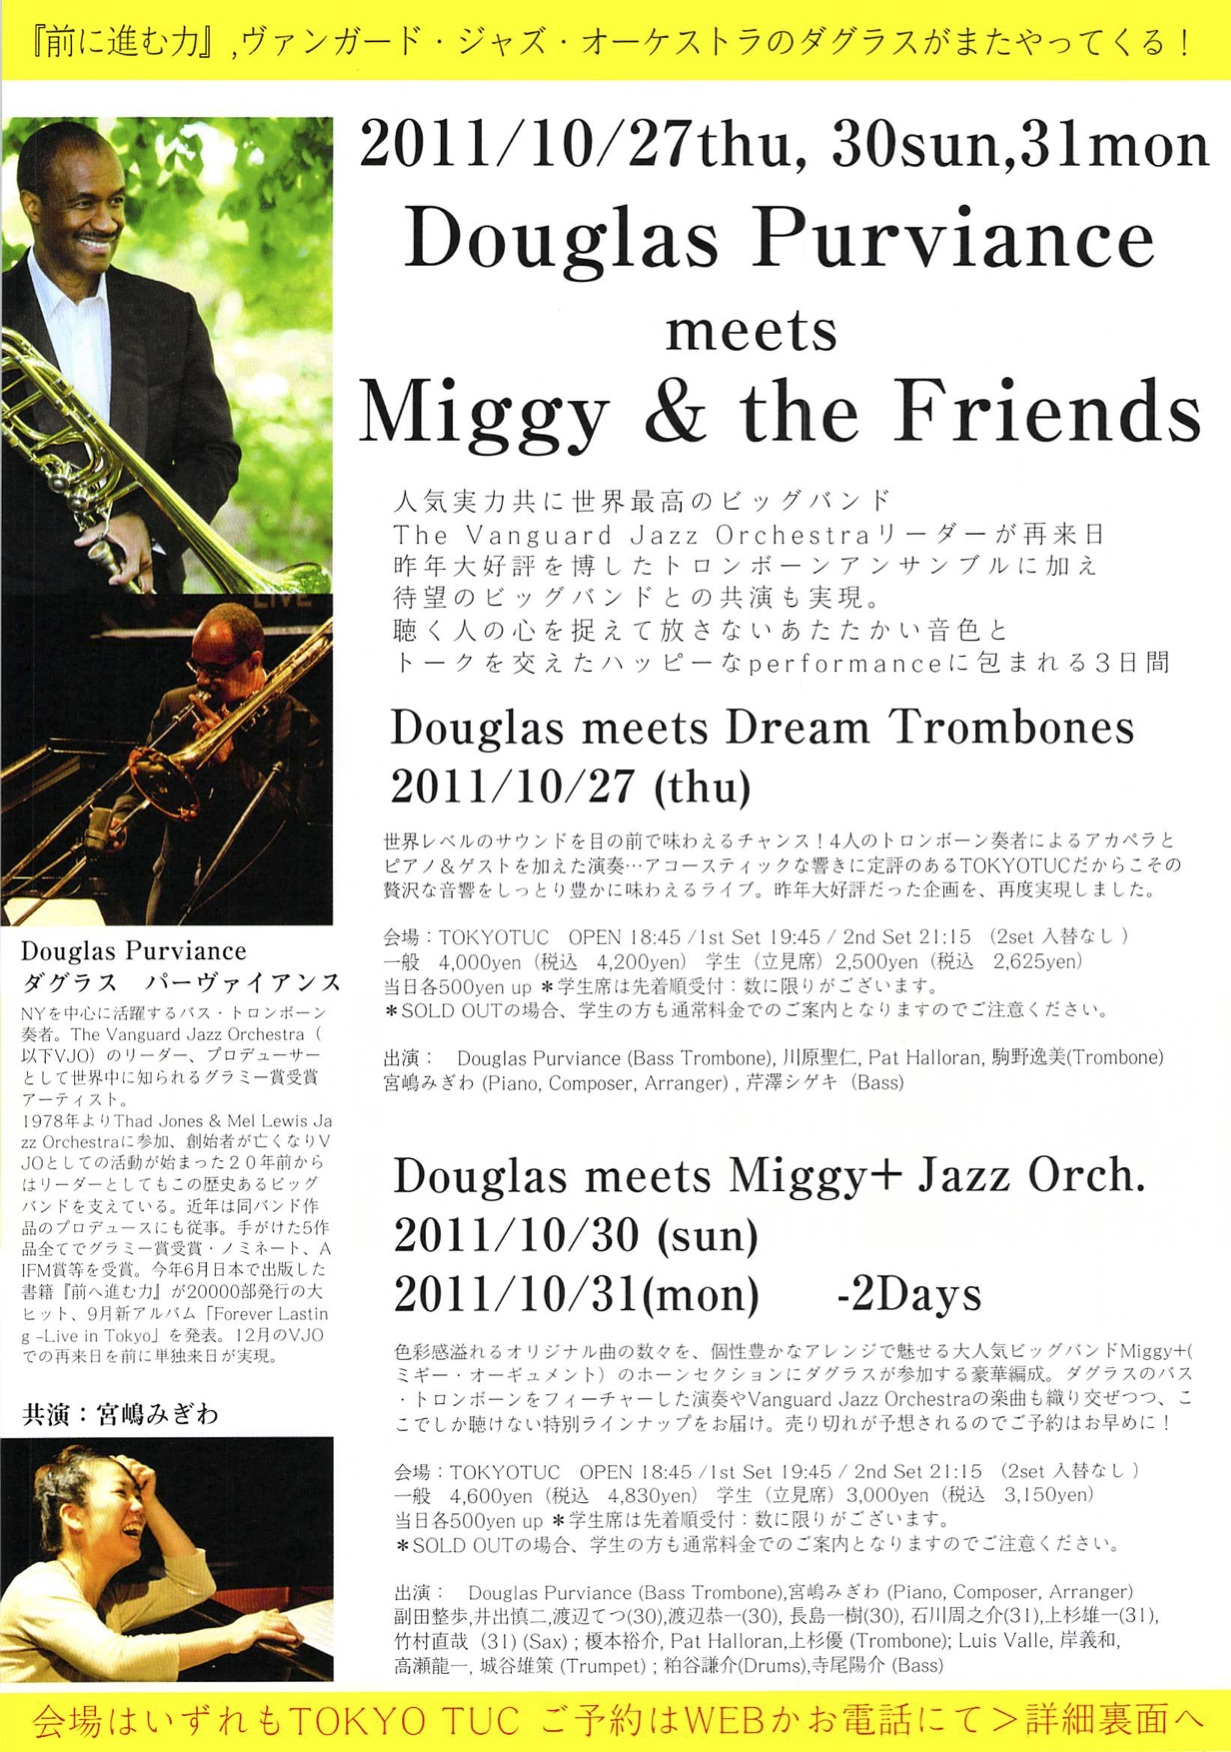 20111030Miggy+Flyer